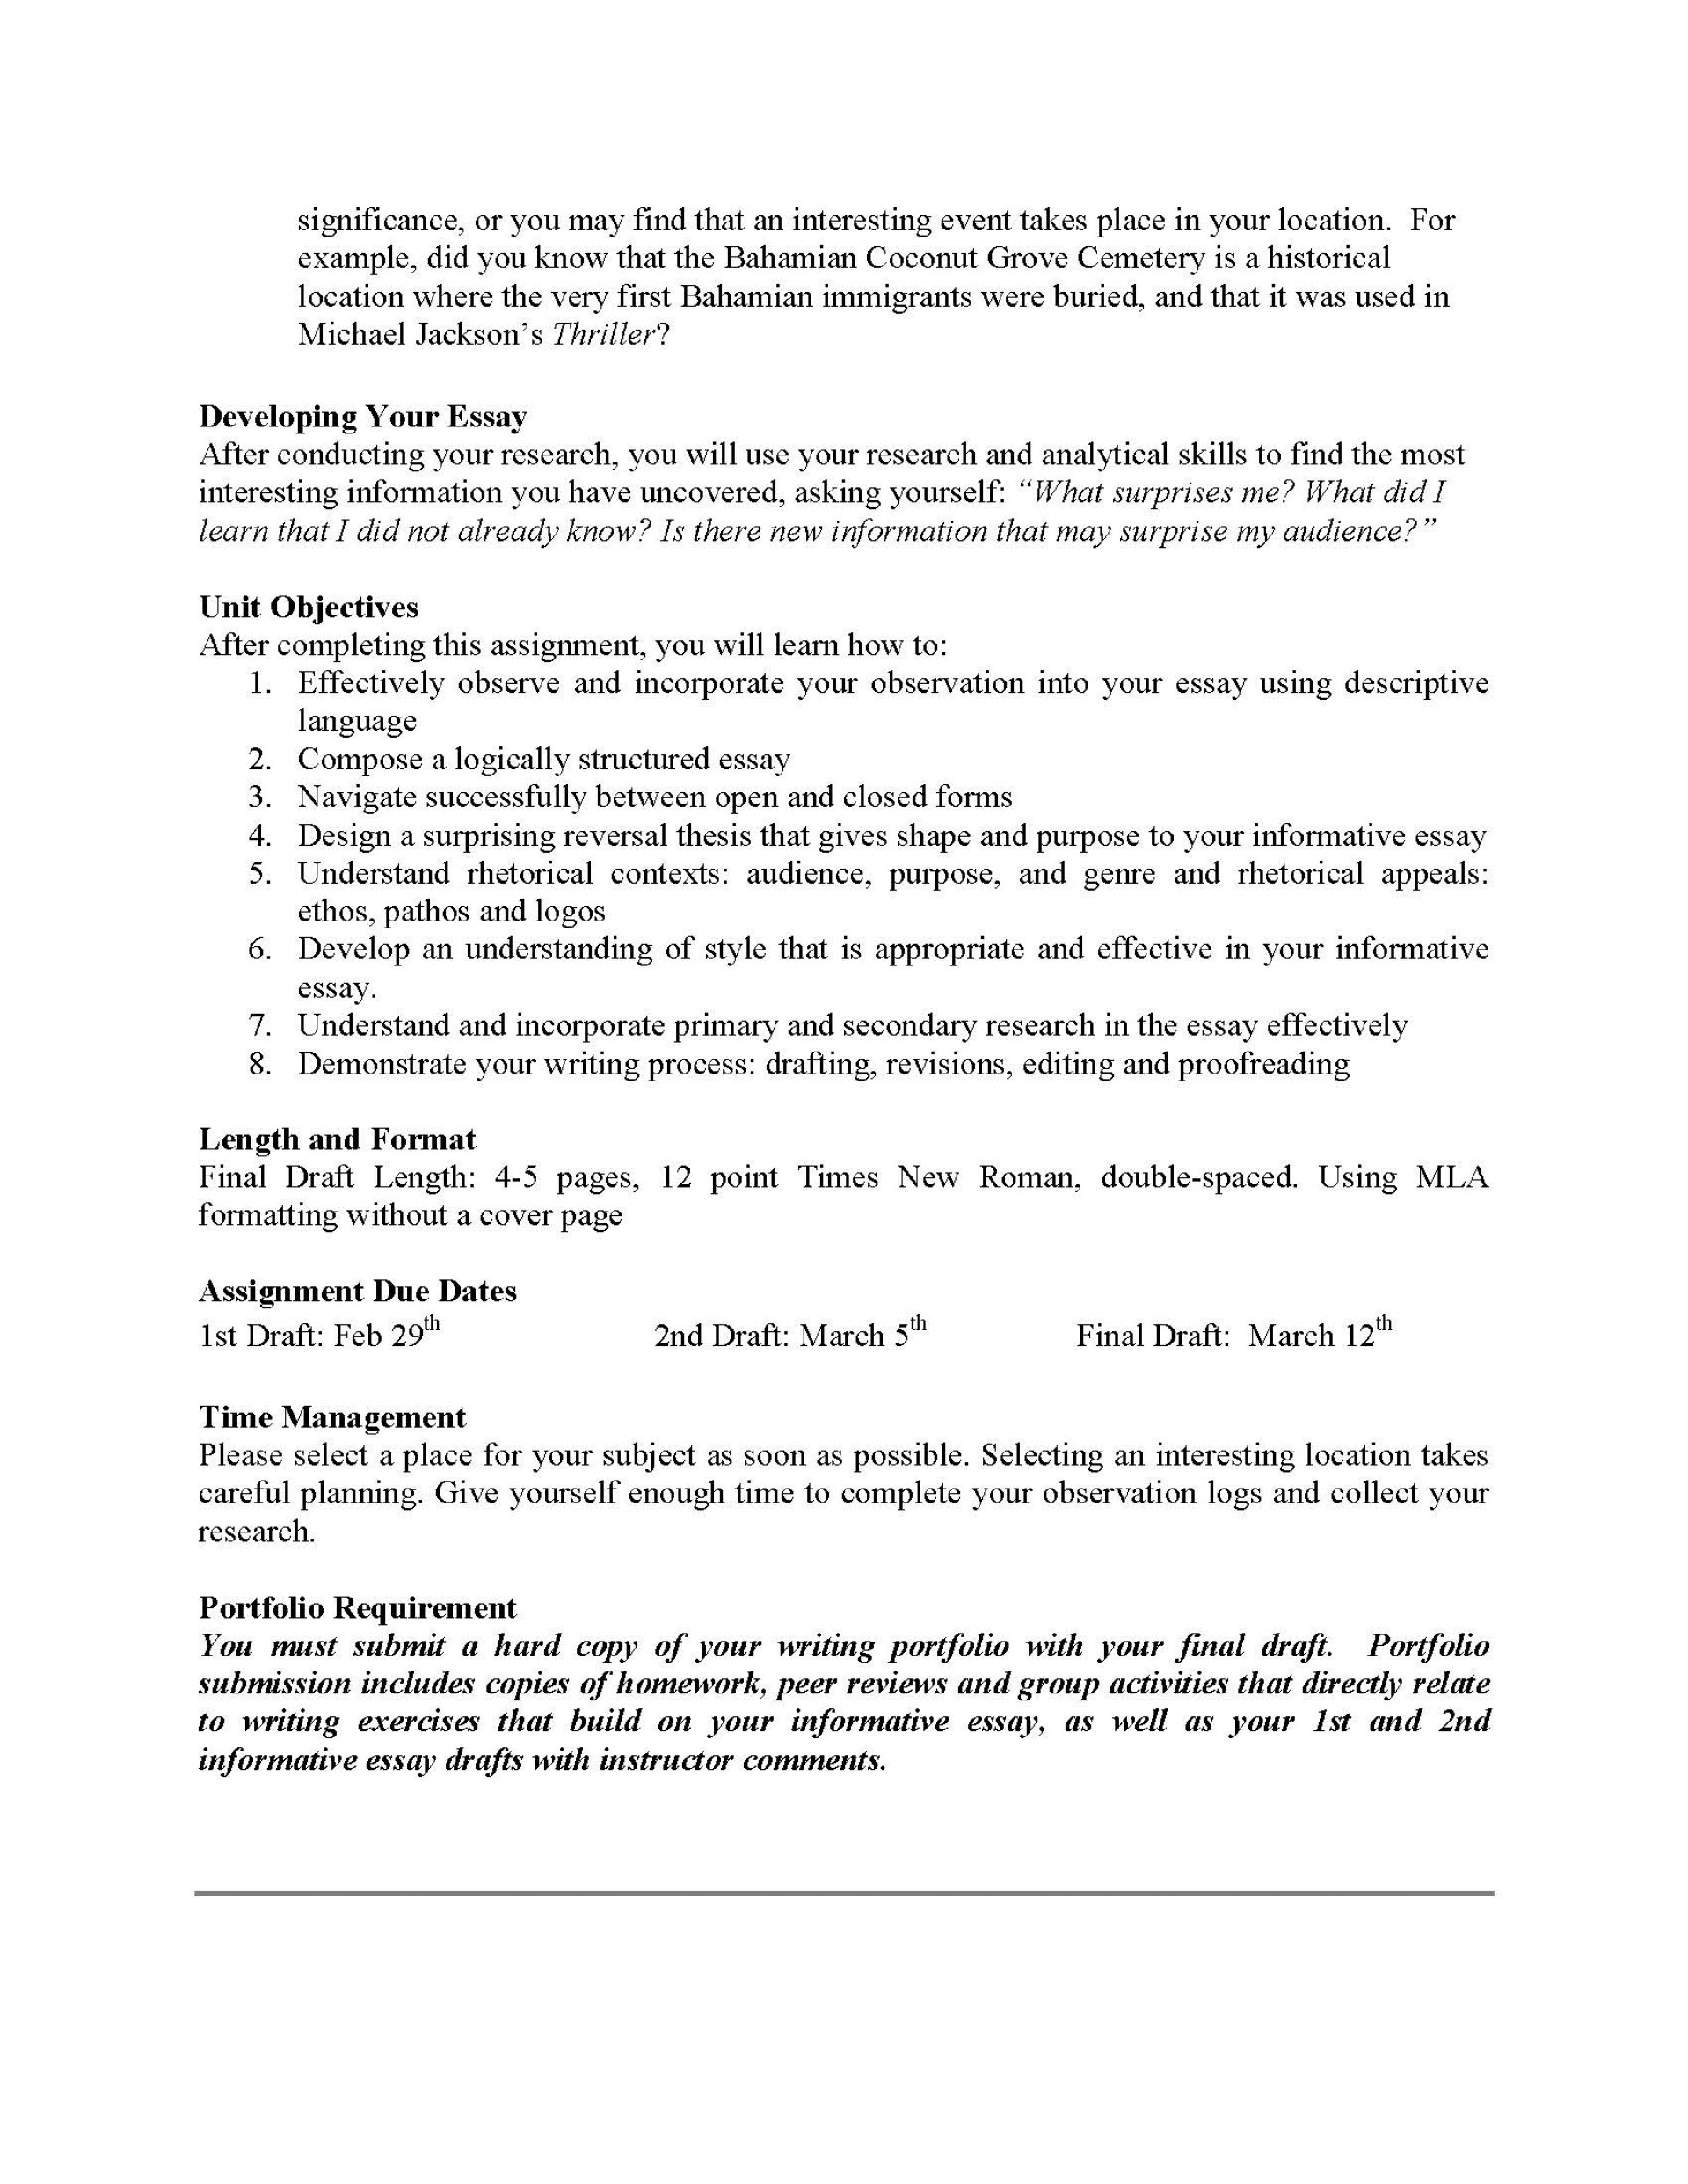 014 Informative Essay Unit Assignment Page 2 Dreaded Prompts High School Topics 2018 Middle 1920